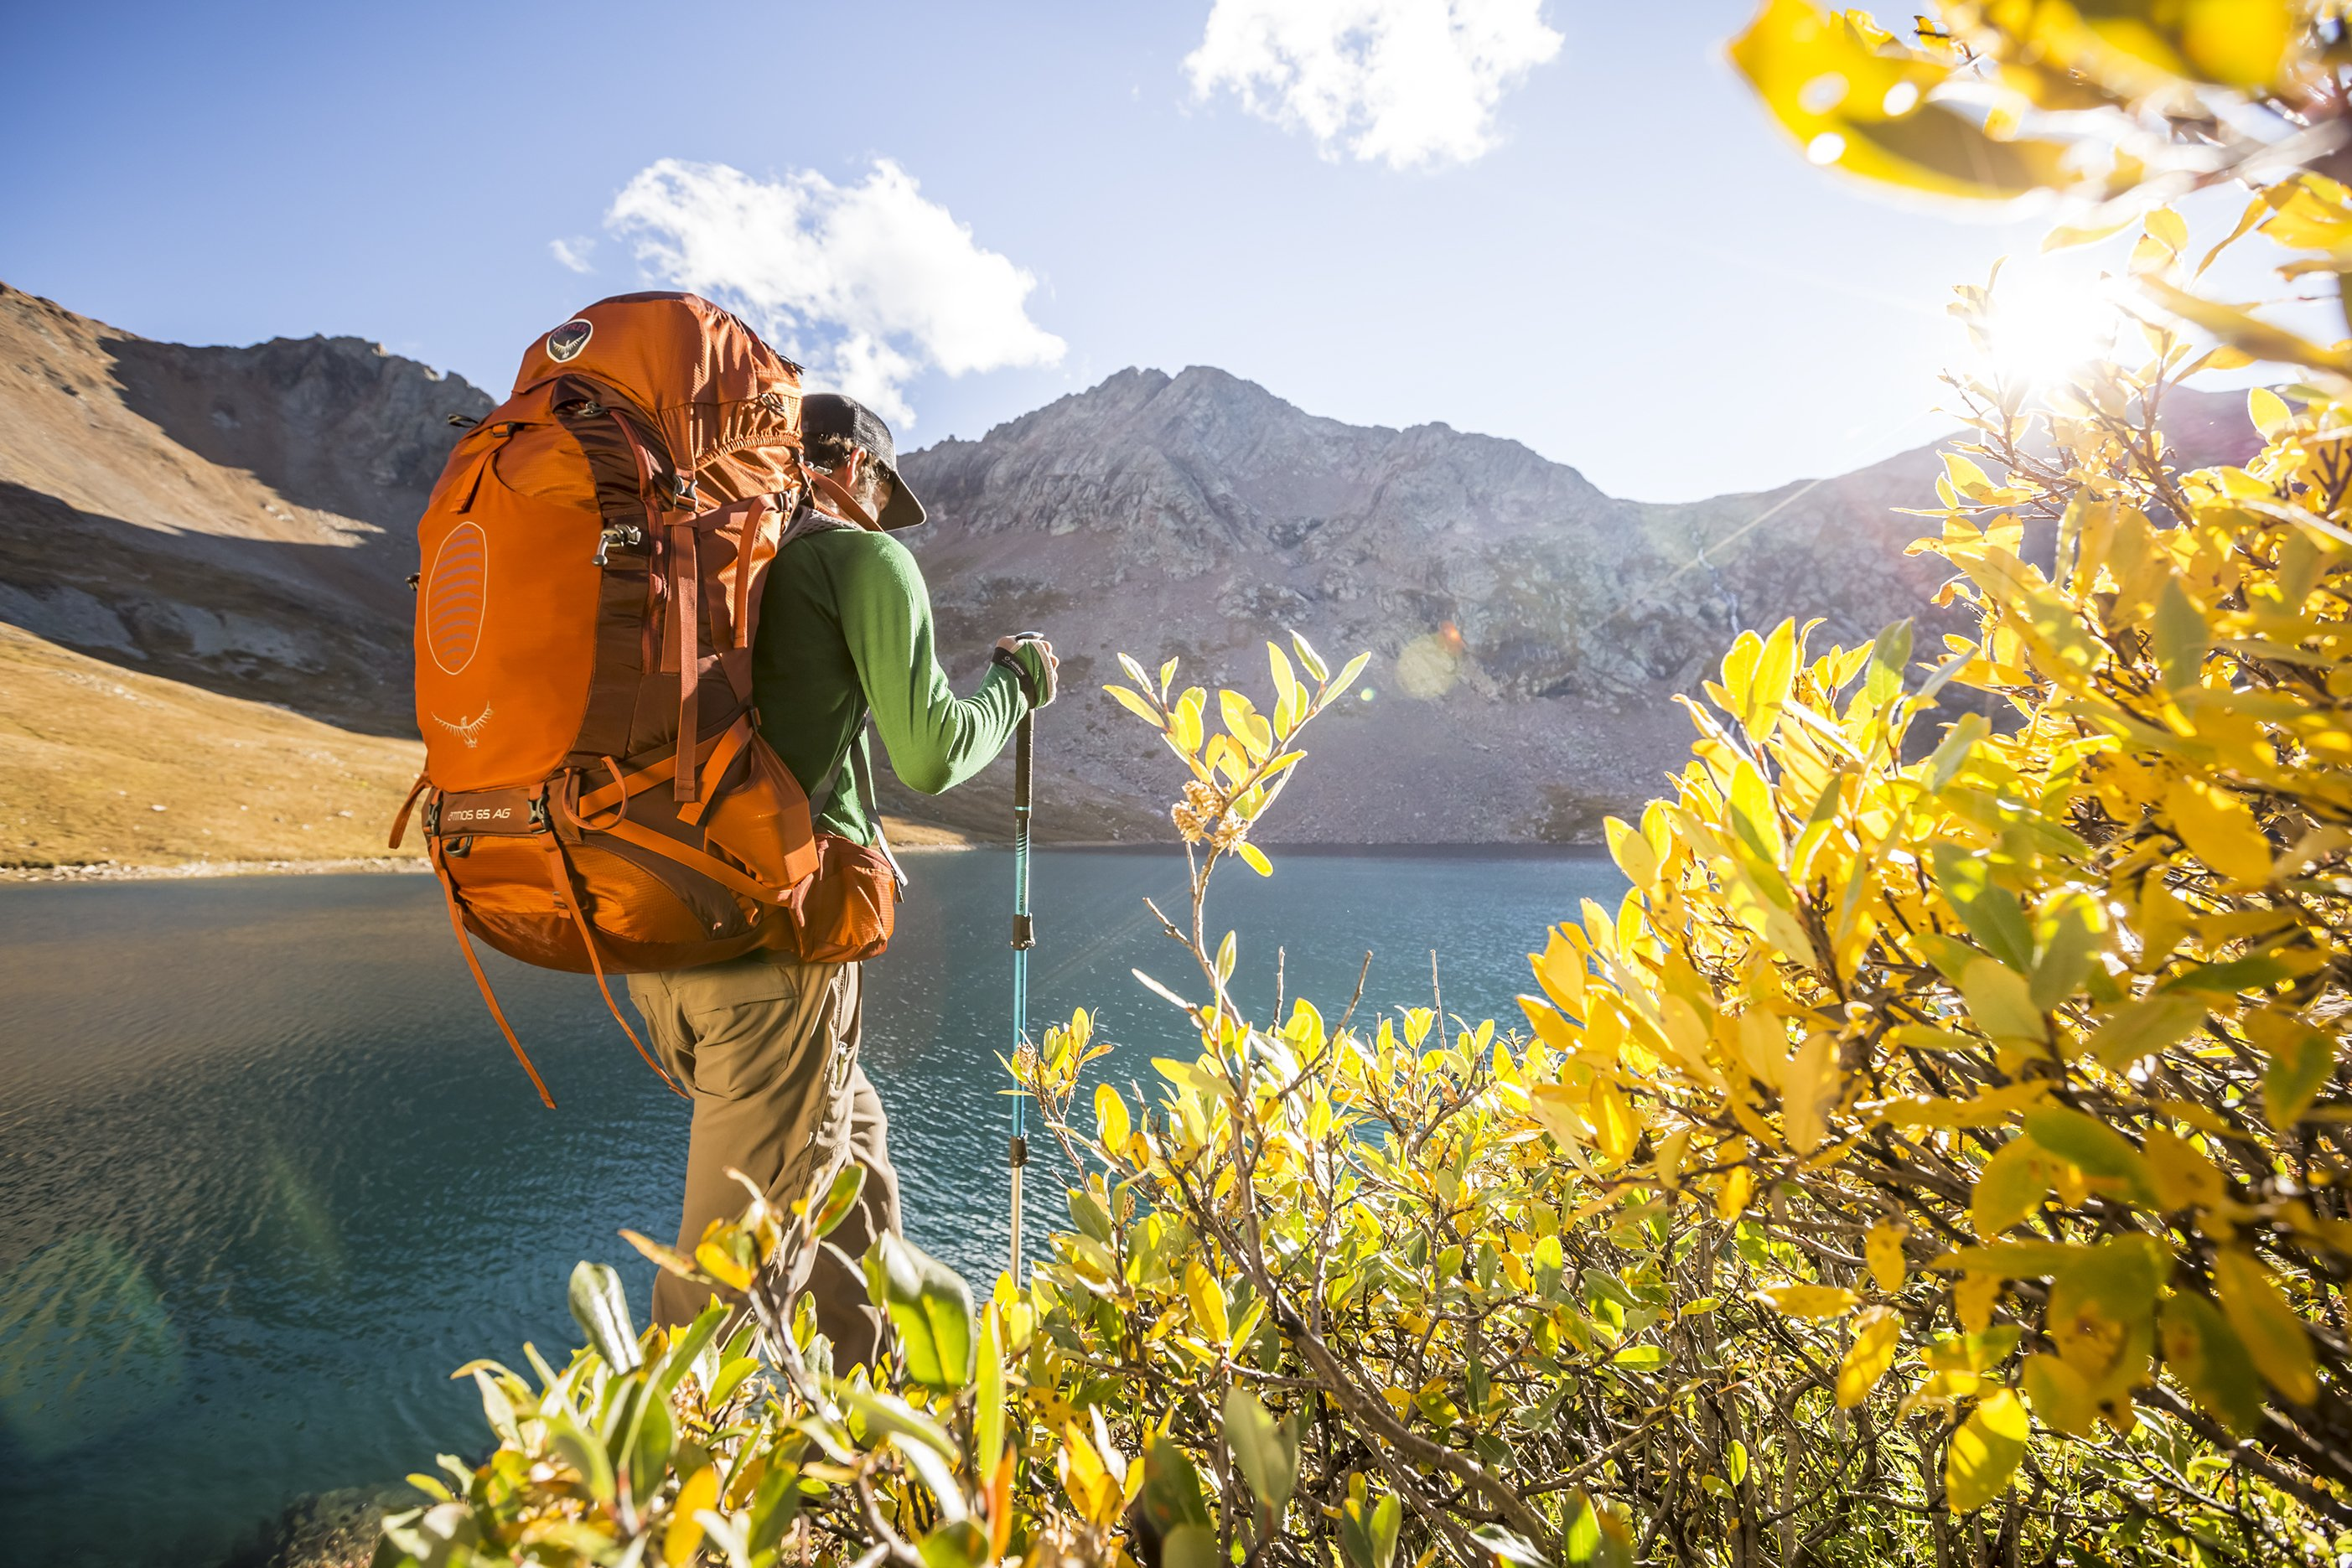 How to Pack for a Pacific Crest Trail Thru-Hike